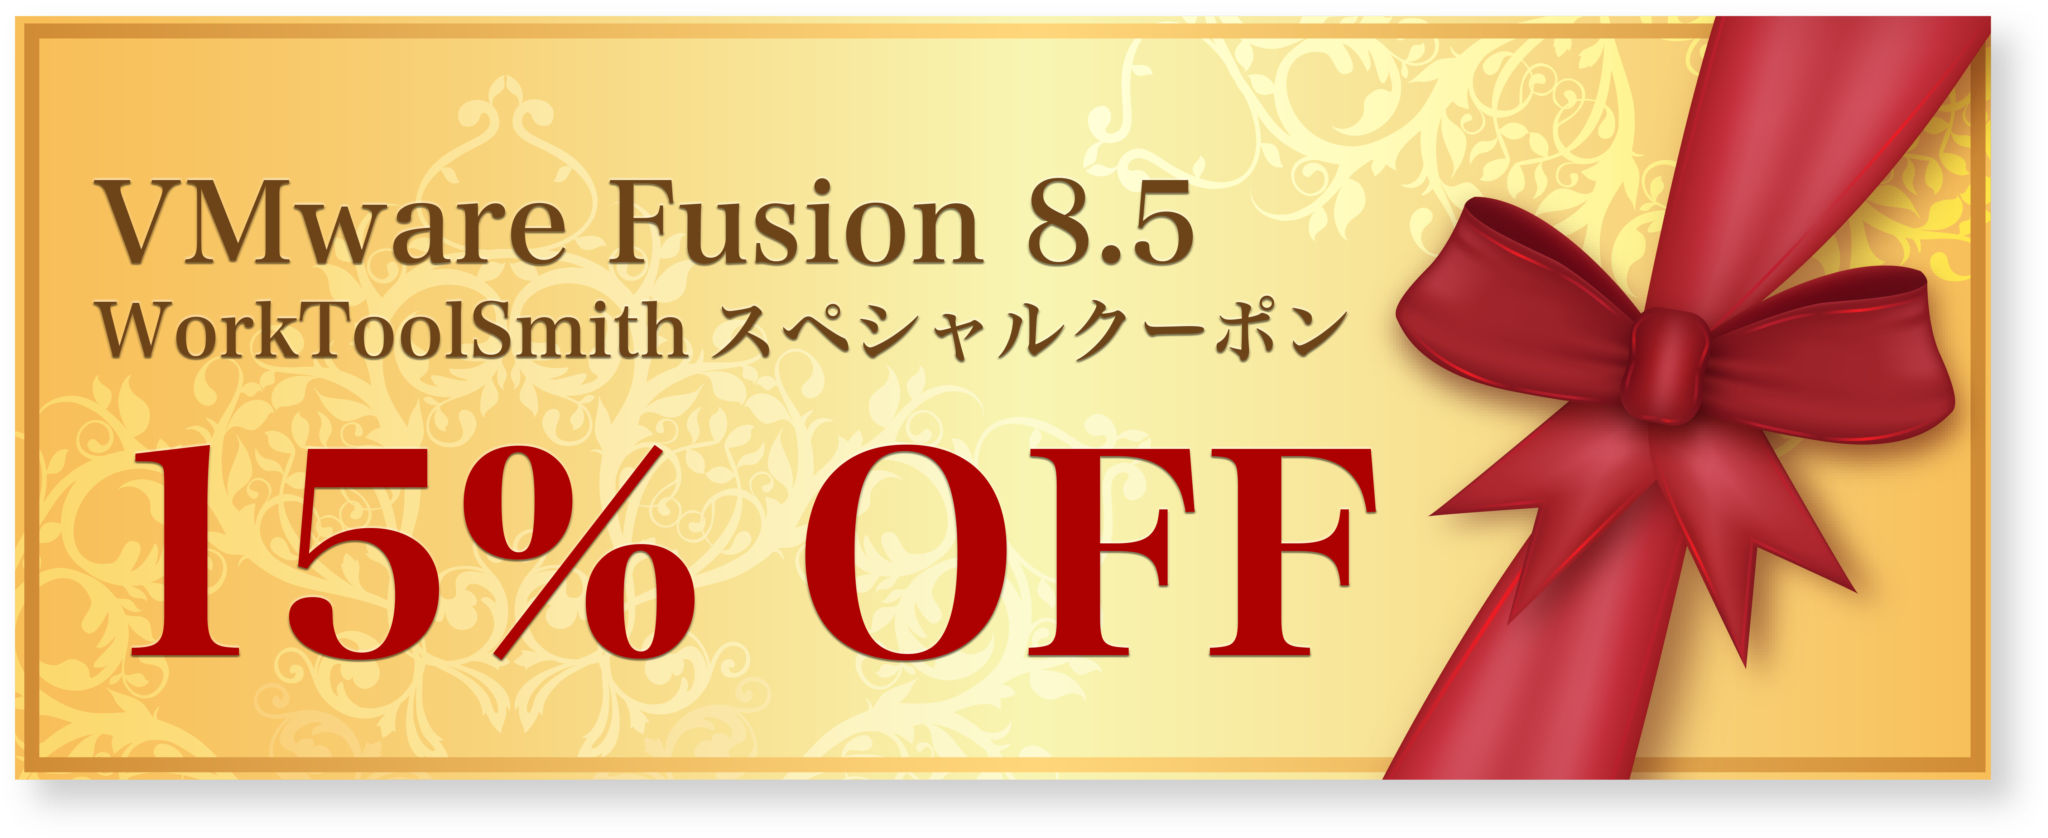 vmware-fusion-8-5-15-off-coupon